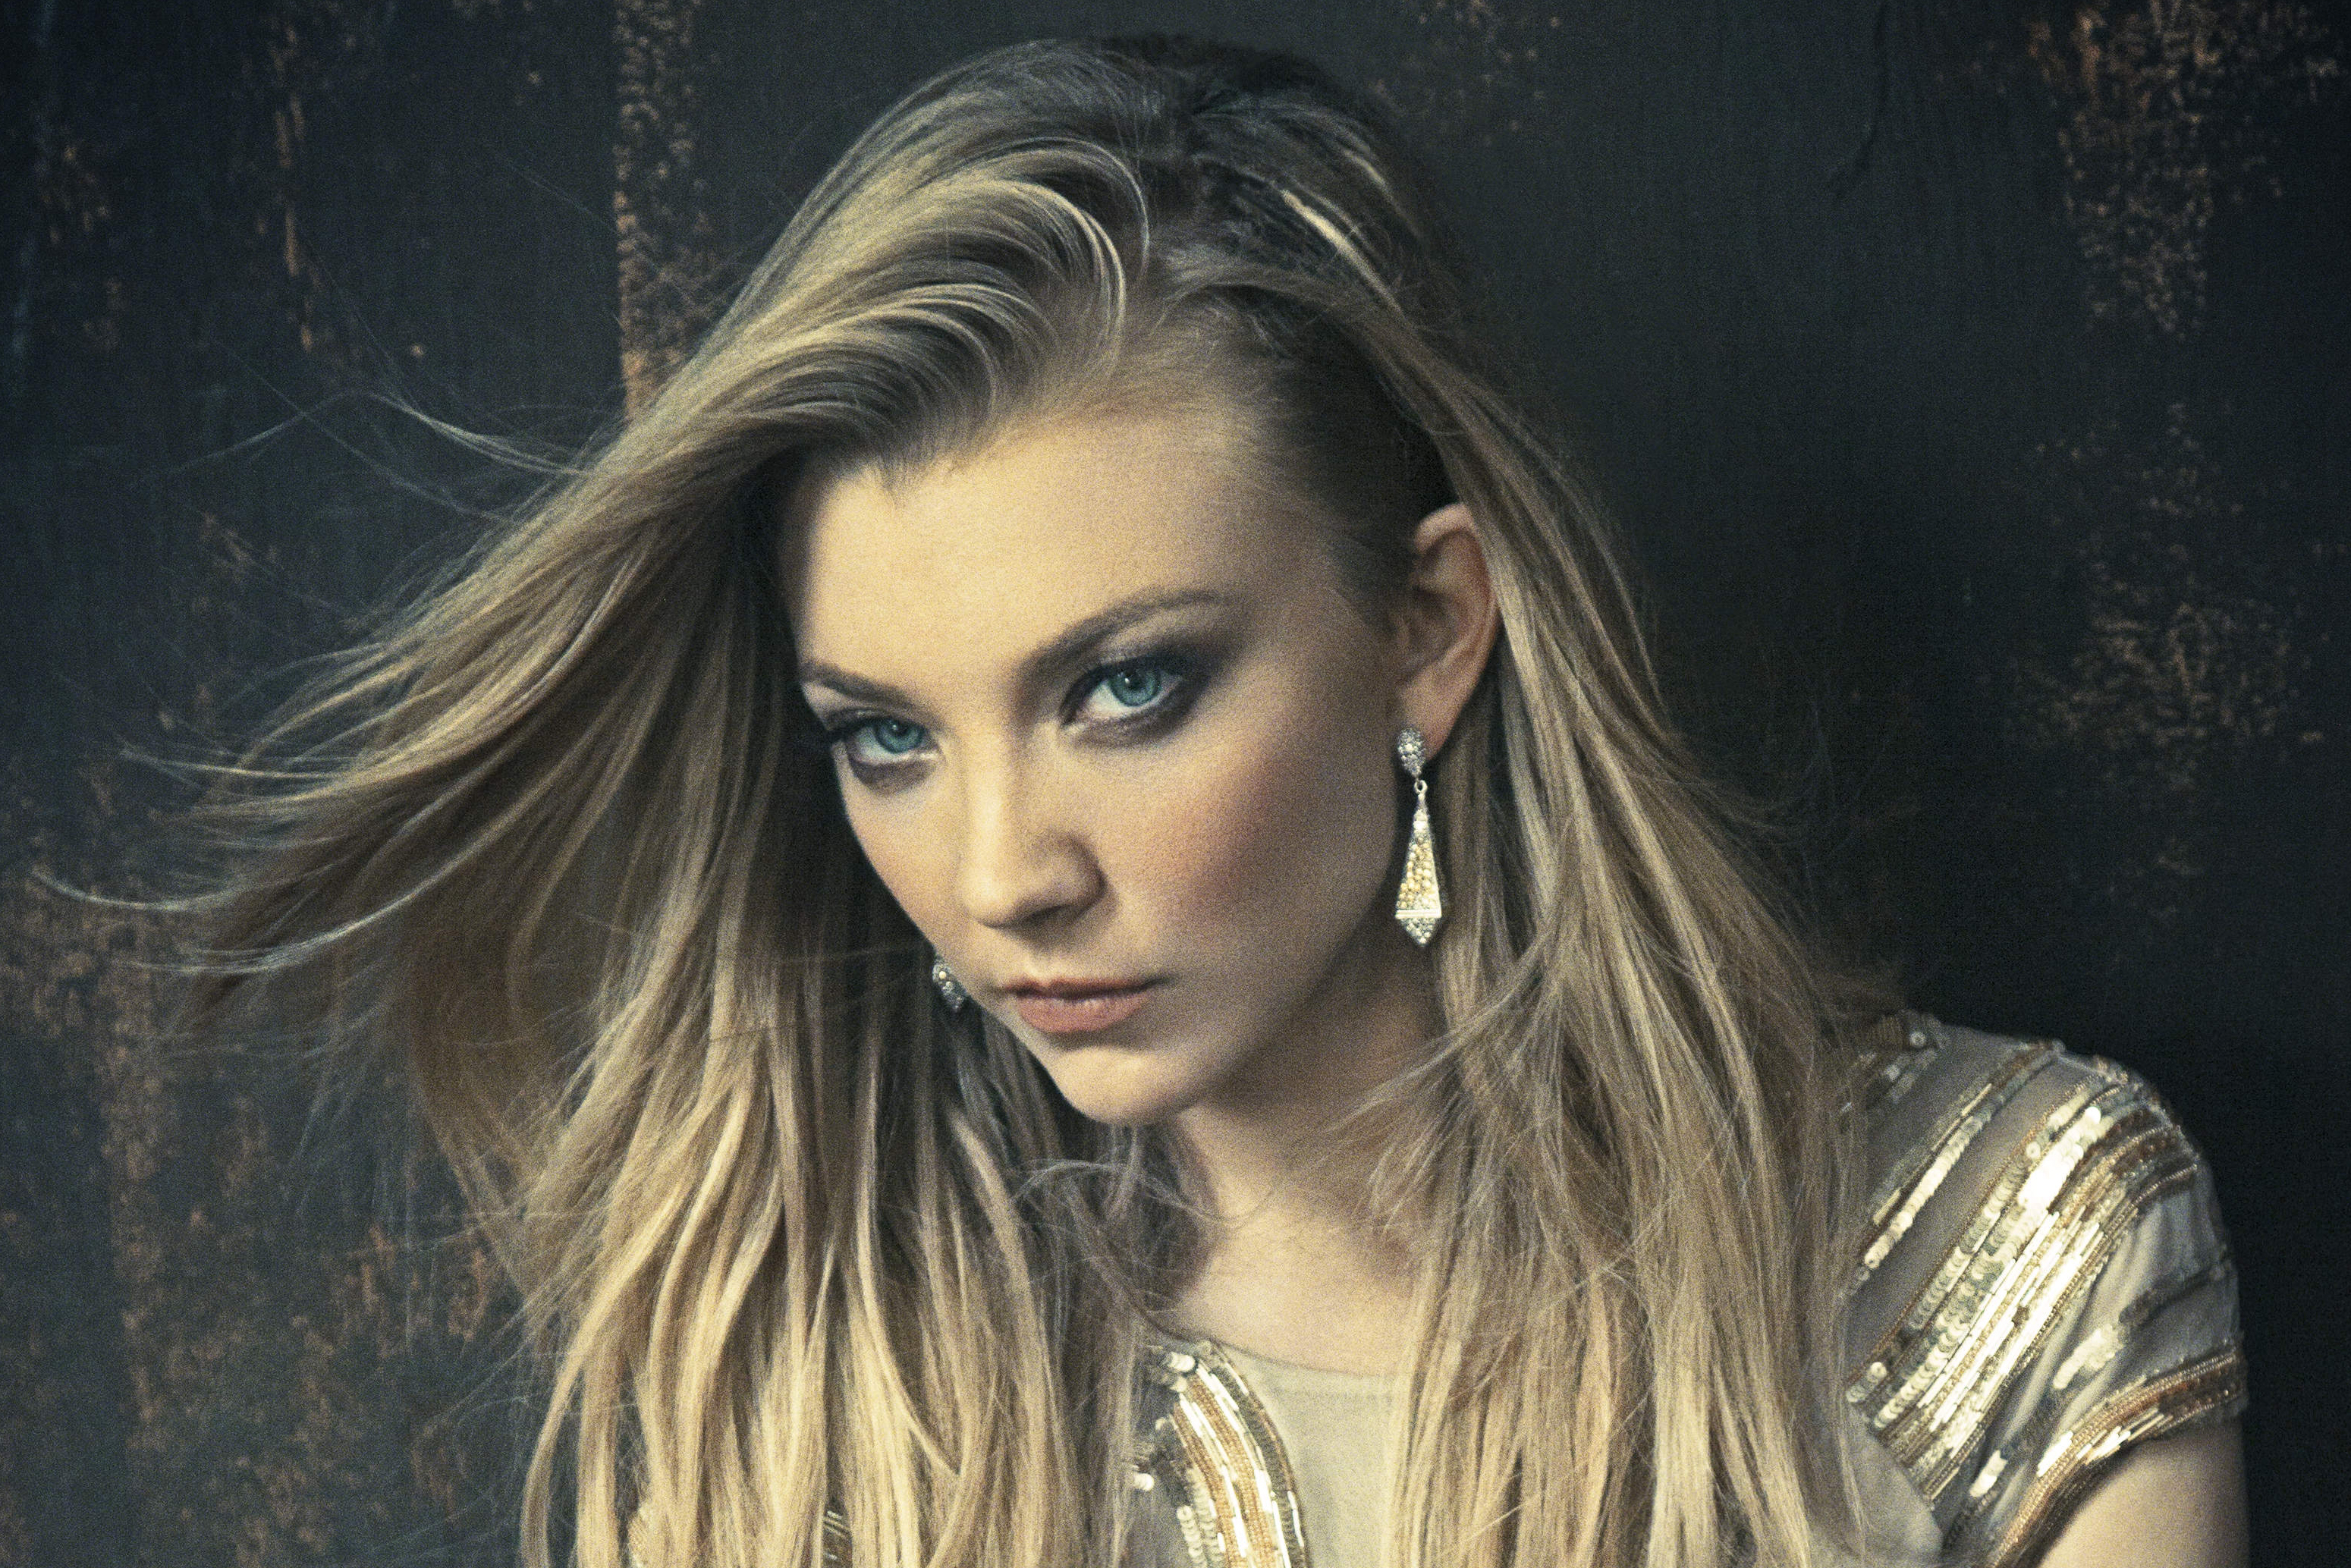 Natalie Dormer 1161159 Hd Wallpaper Backgrounds Download